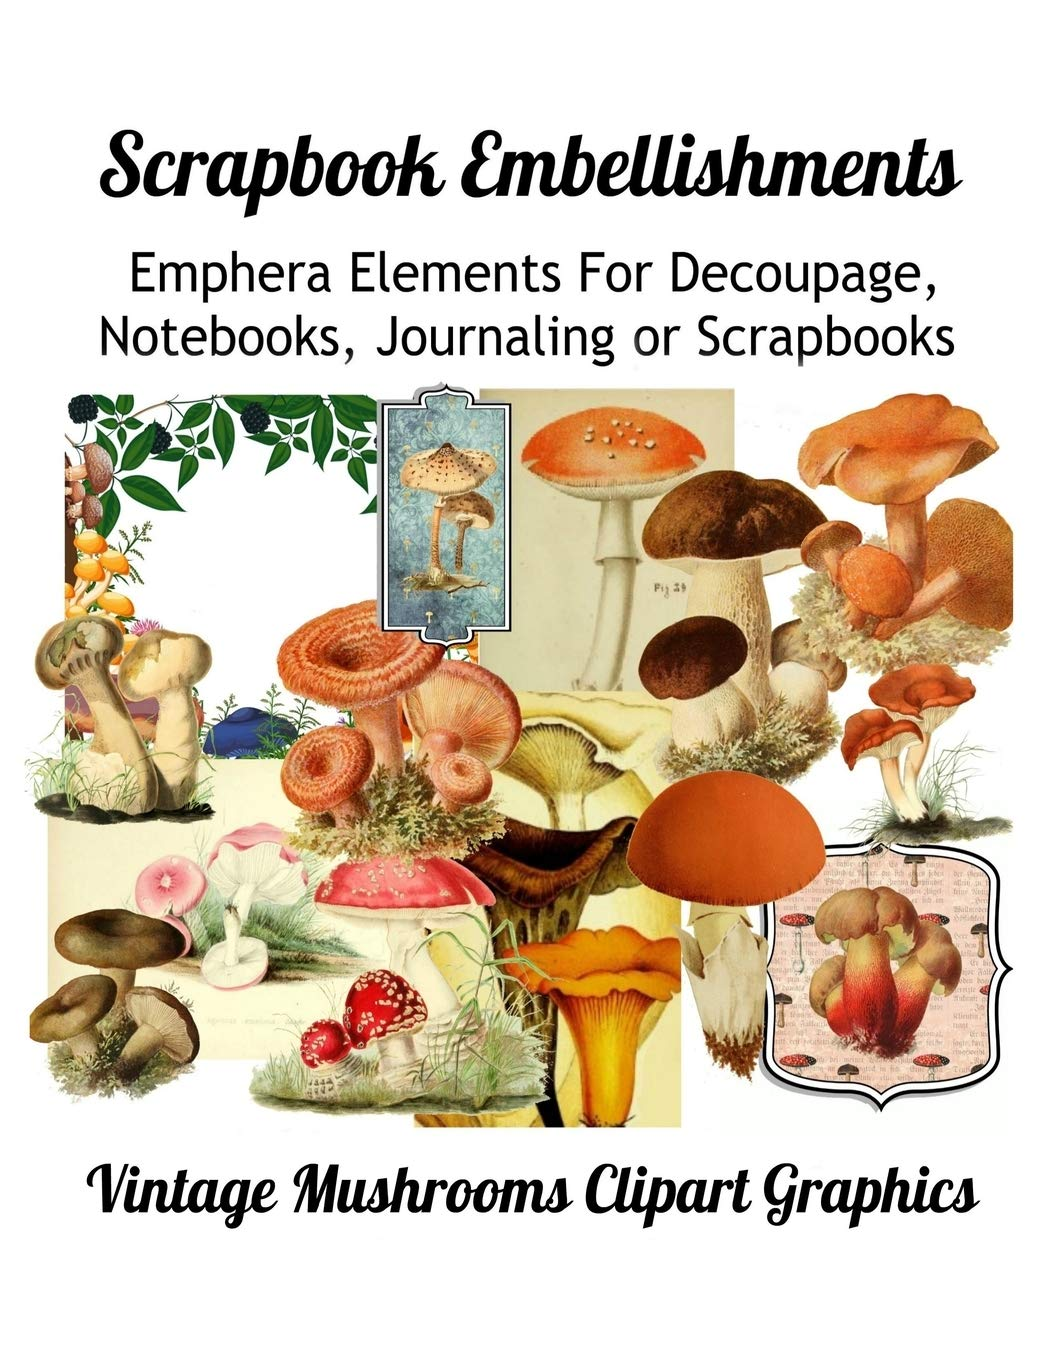 Scrapbook Embellishments Emphera Elements For Decoupage Notebooks Journaling Or Scrapbooks Vintage Mushroom Clipart Graphics Media Paper Moon 9781088463574 Amazon Com Books Affordable and search from millions of royalty free images, photos and vectors. scrapbook embellishments emphera